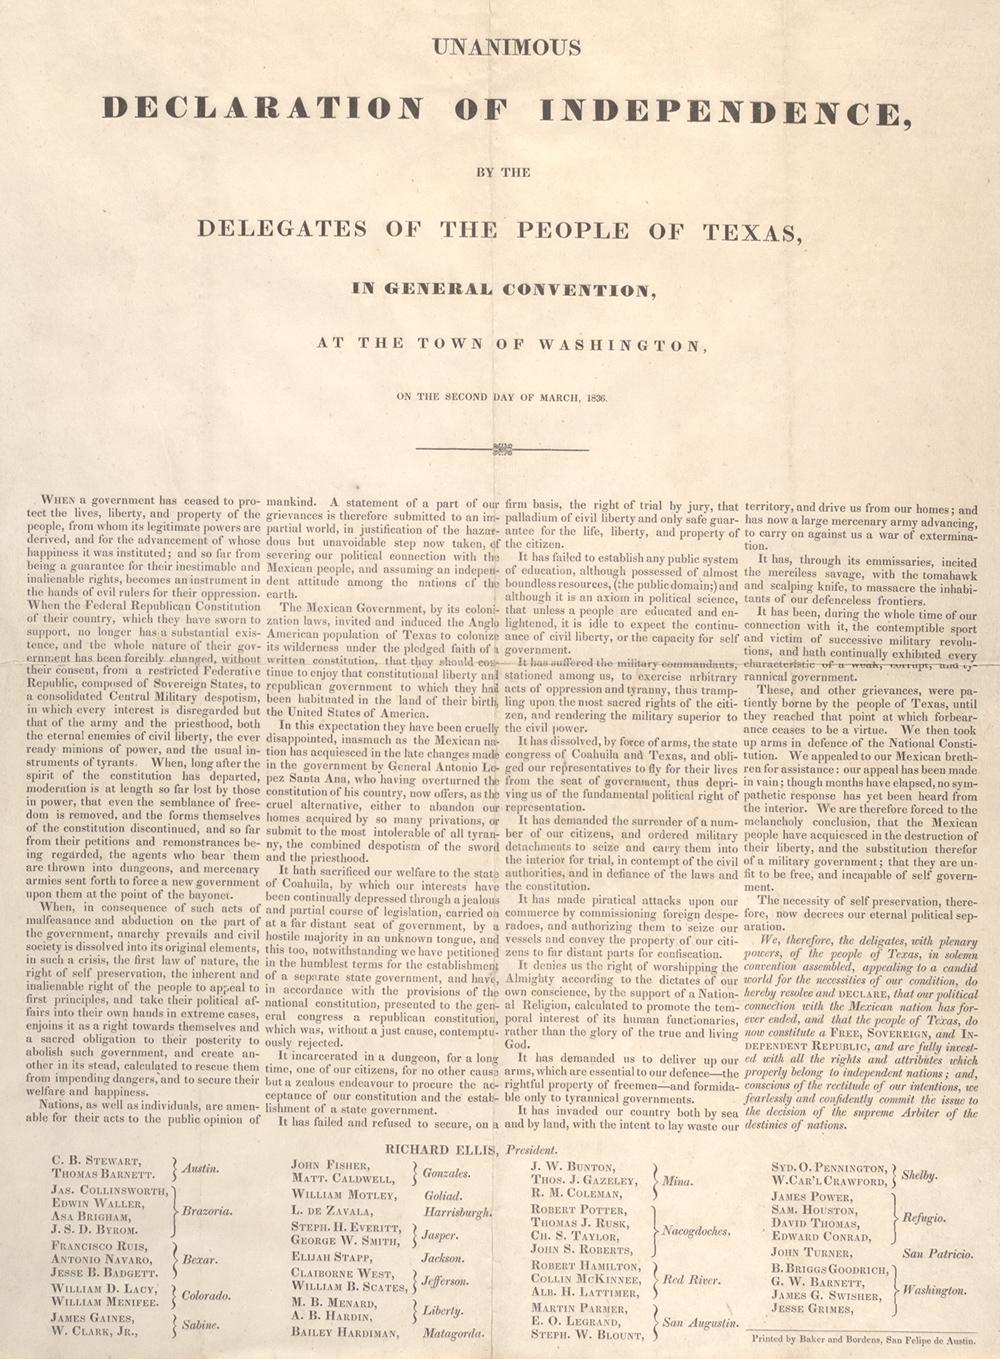 texas declaration of independence the gilder lehrman texas declaration of independence 2 1836 glc02559